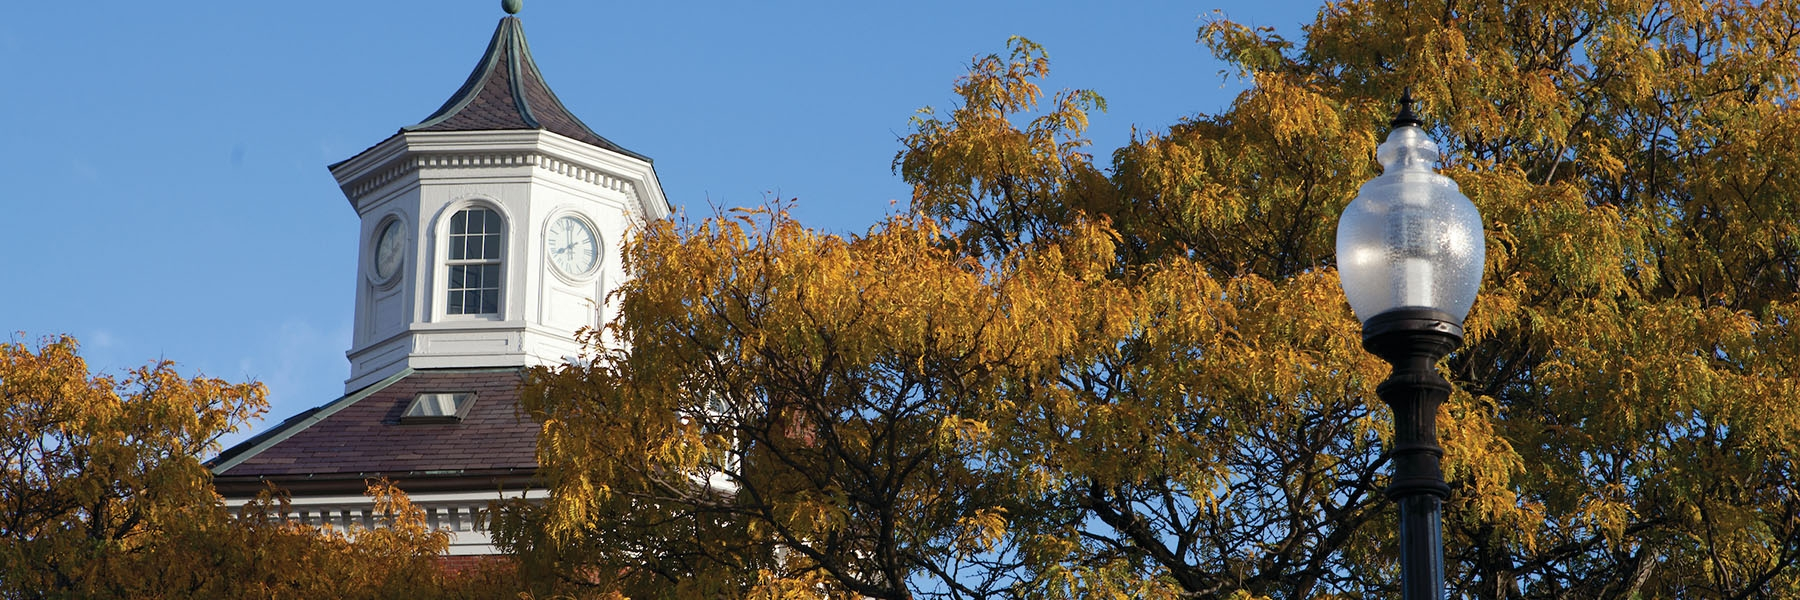 photo shows white clock tower on campus peeking above some yellow trees